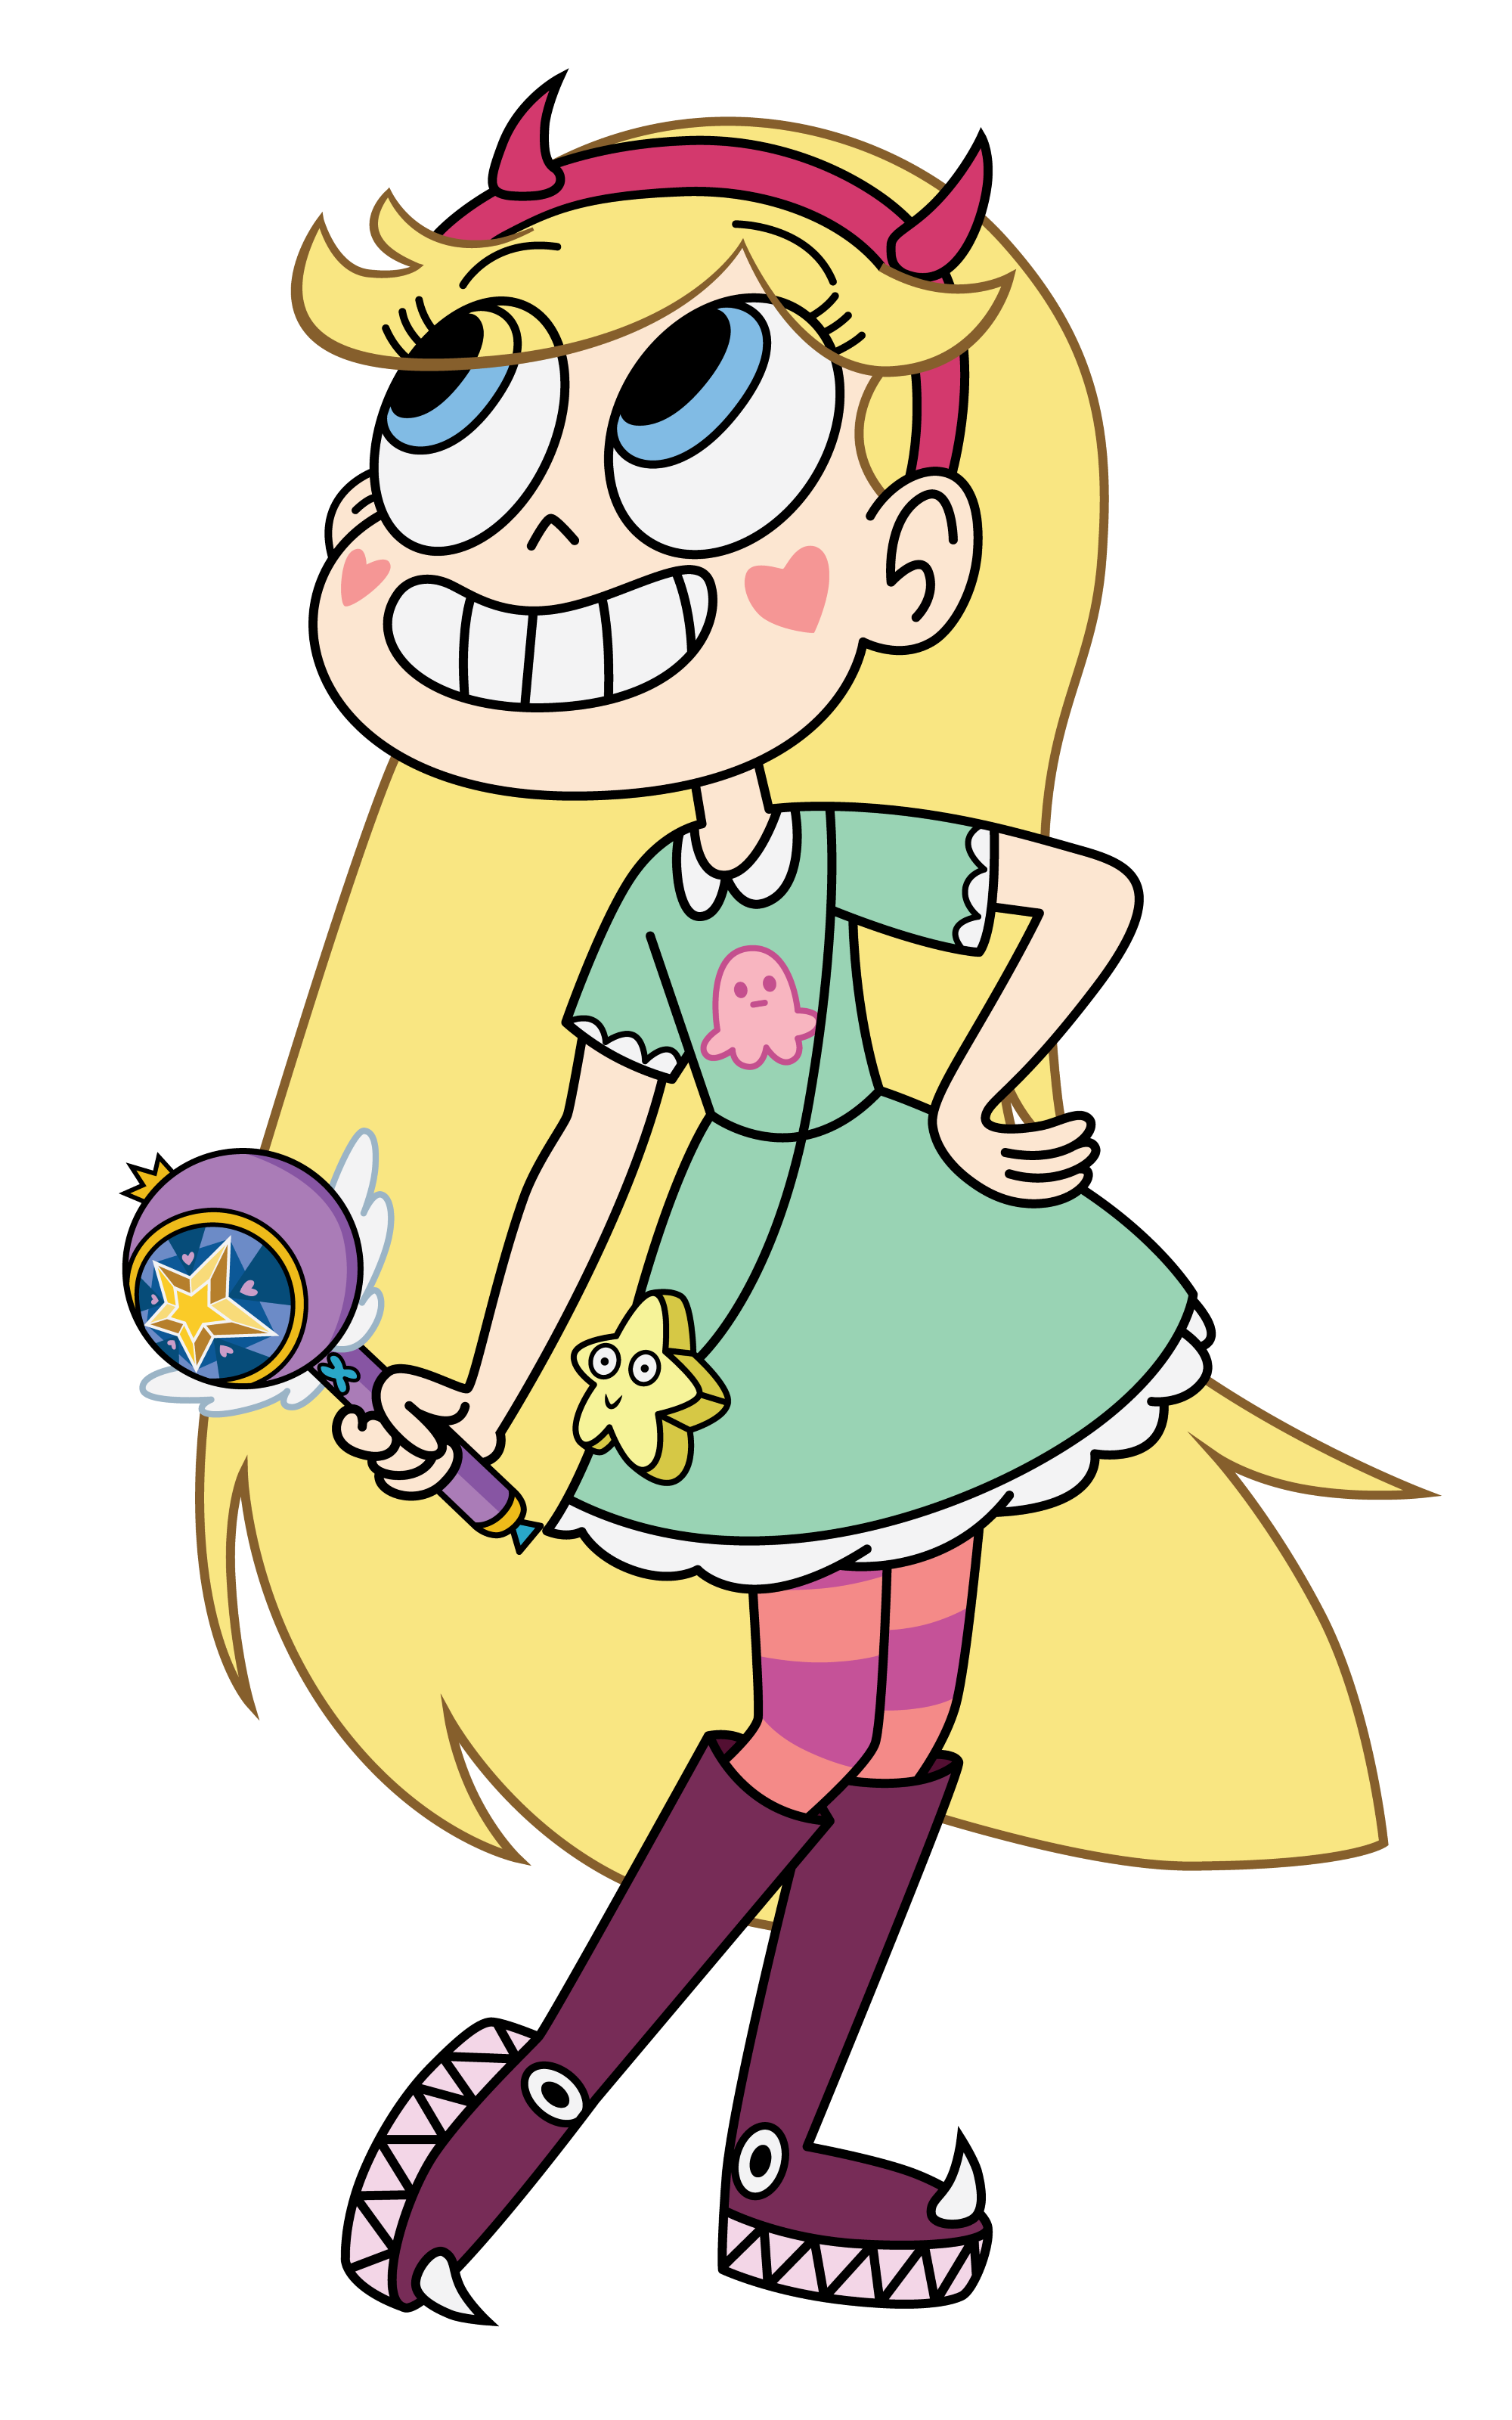 star butterfly - Google Search